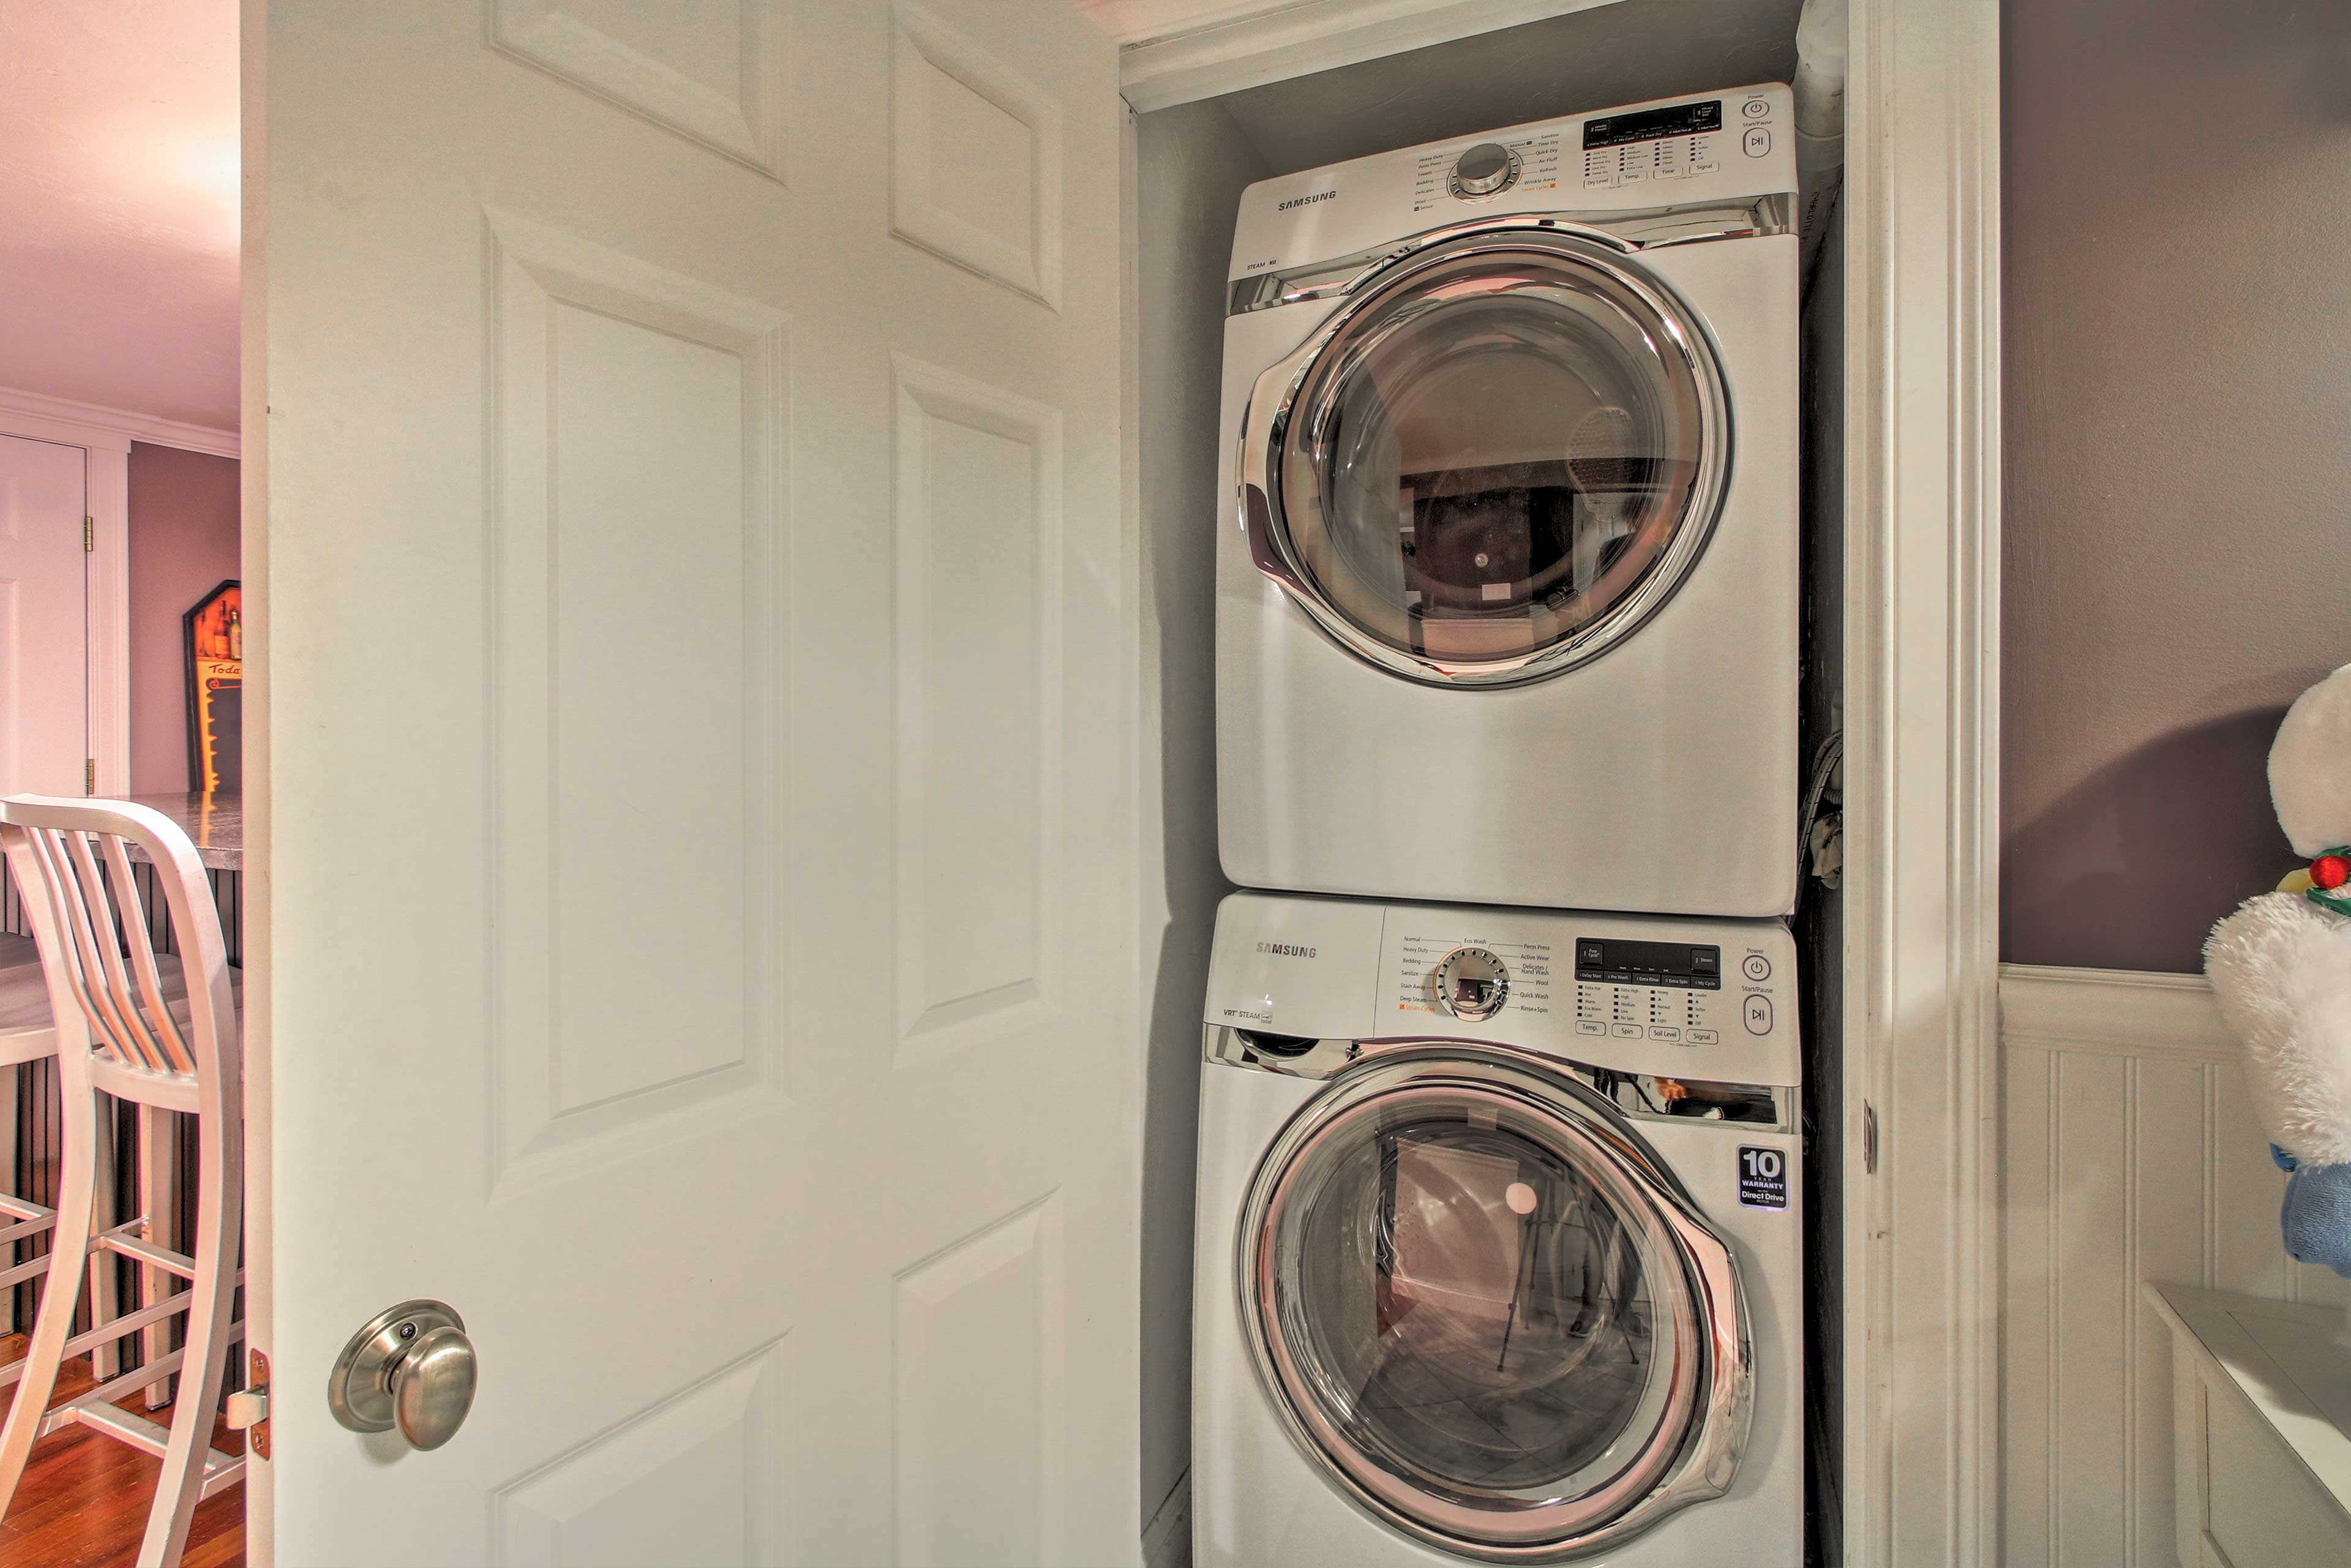 Keep your dirty duds looking fresh with the in-unit laundry machines!